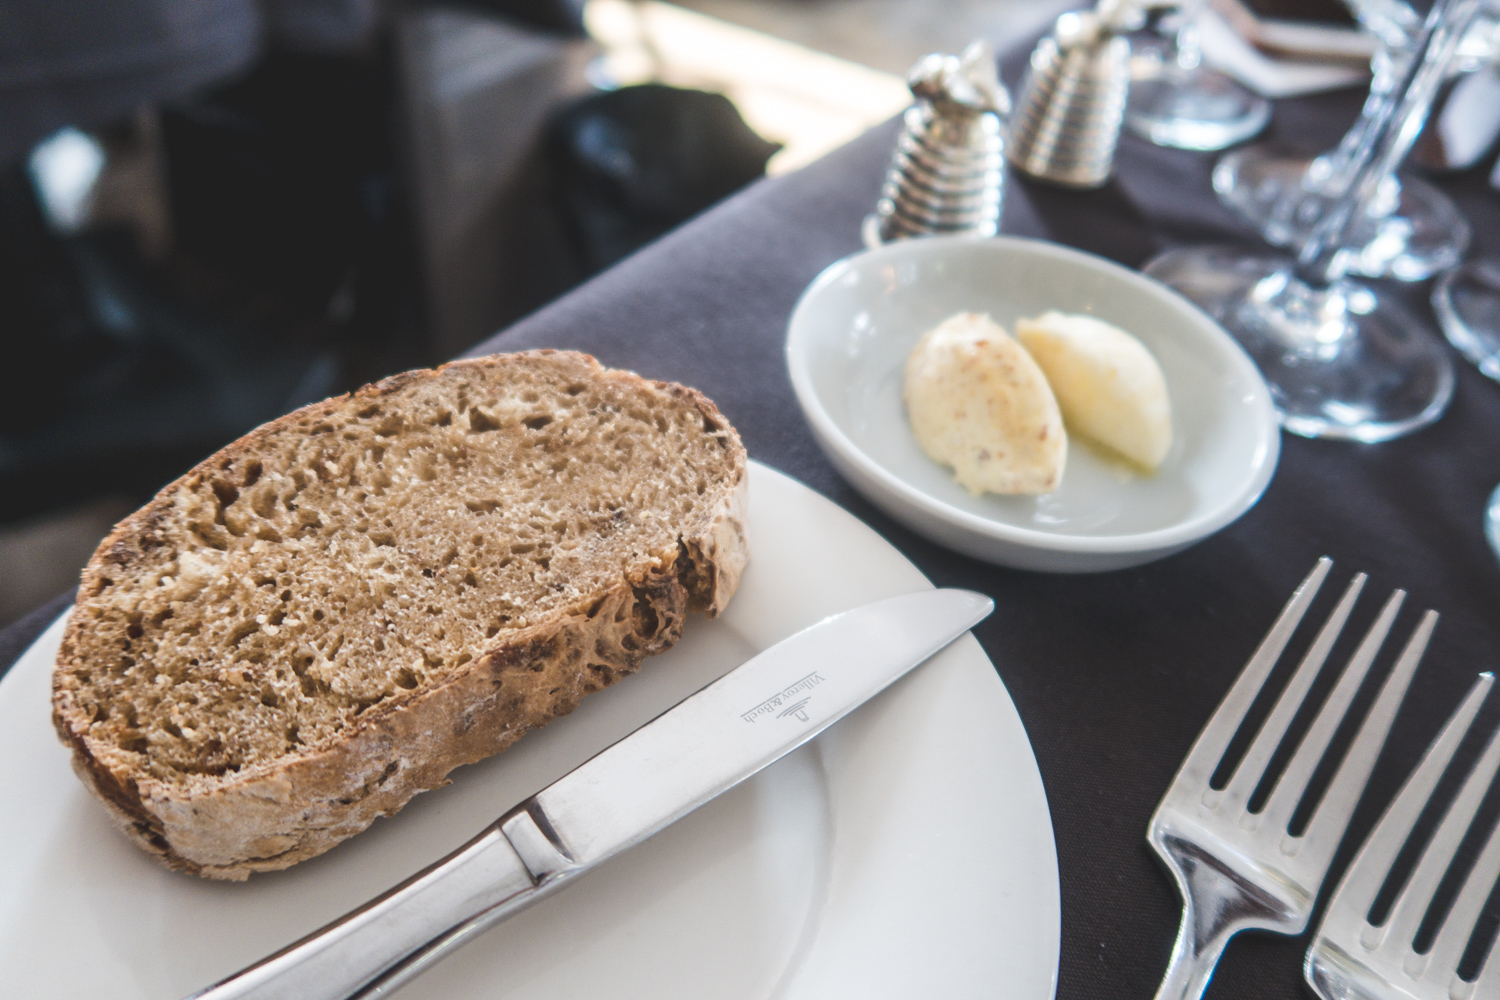 Bread with two types of butter